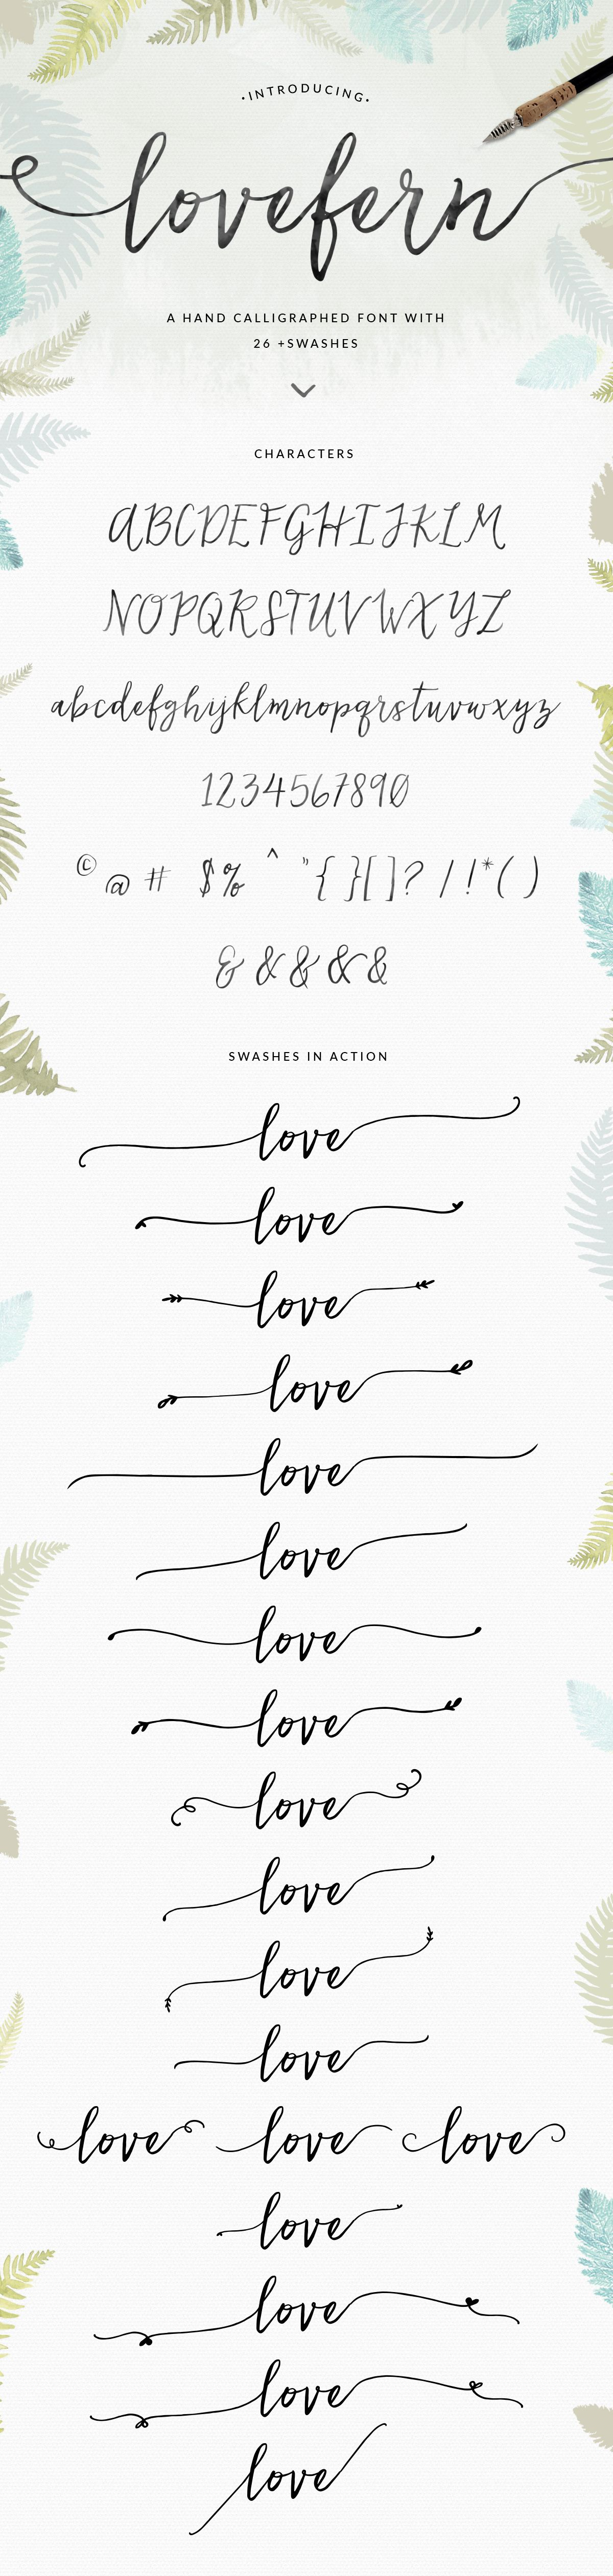 Pretty Modern Calligraphy Swash Font Design by Angie Makes. This would be great for so many graphic design projects. Can't you see this font on wedding invitations, blogs, logos, galore. YES!